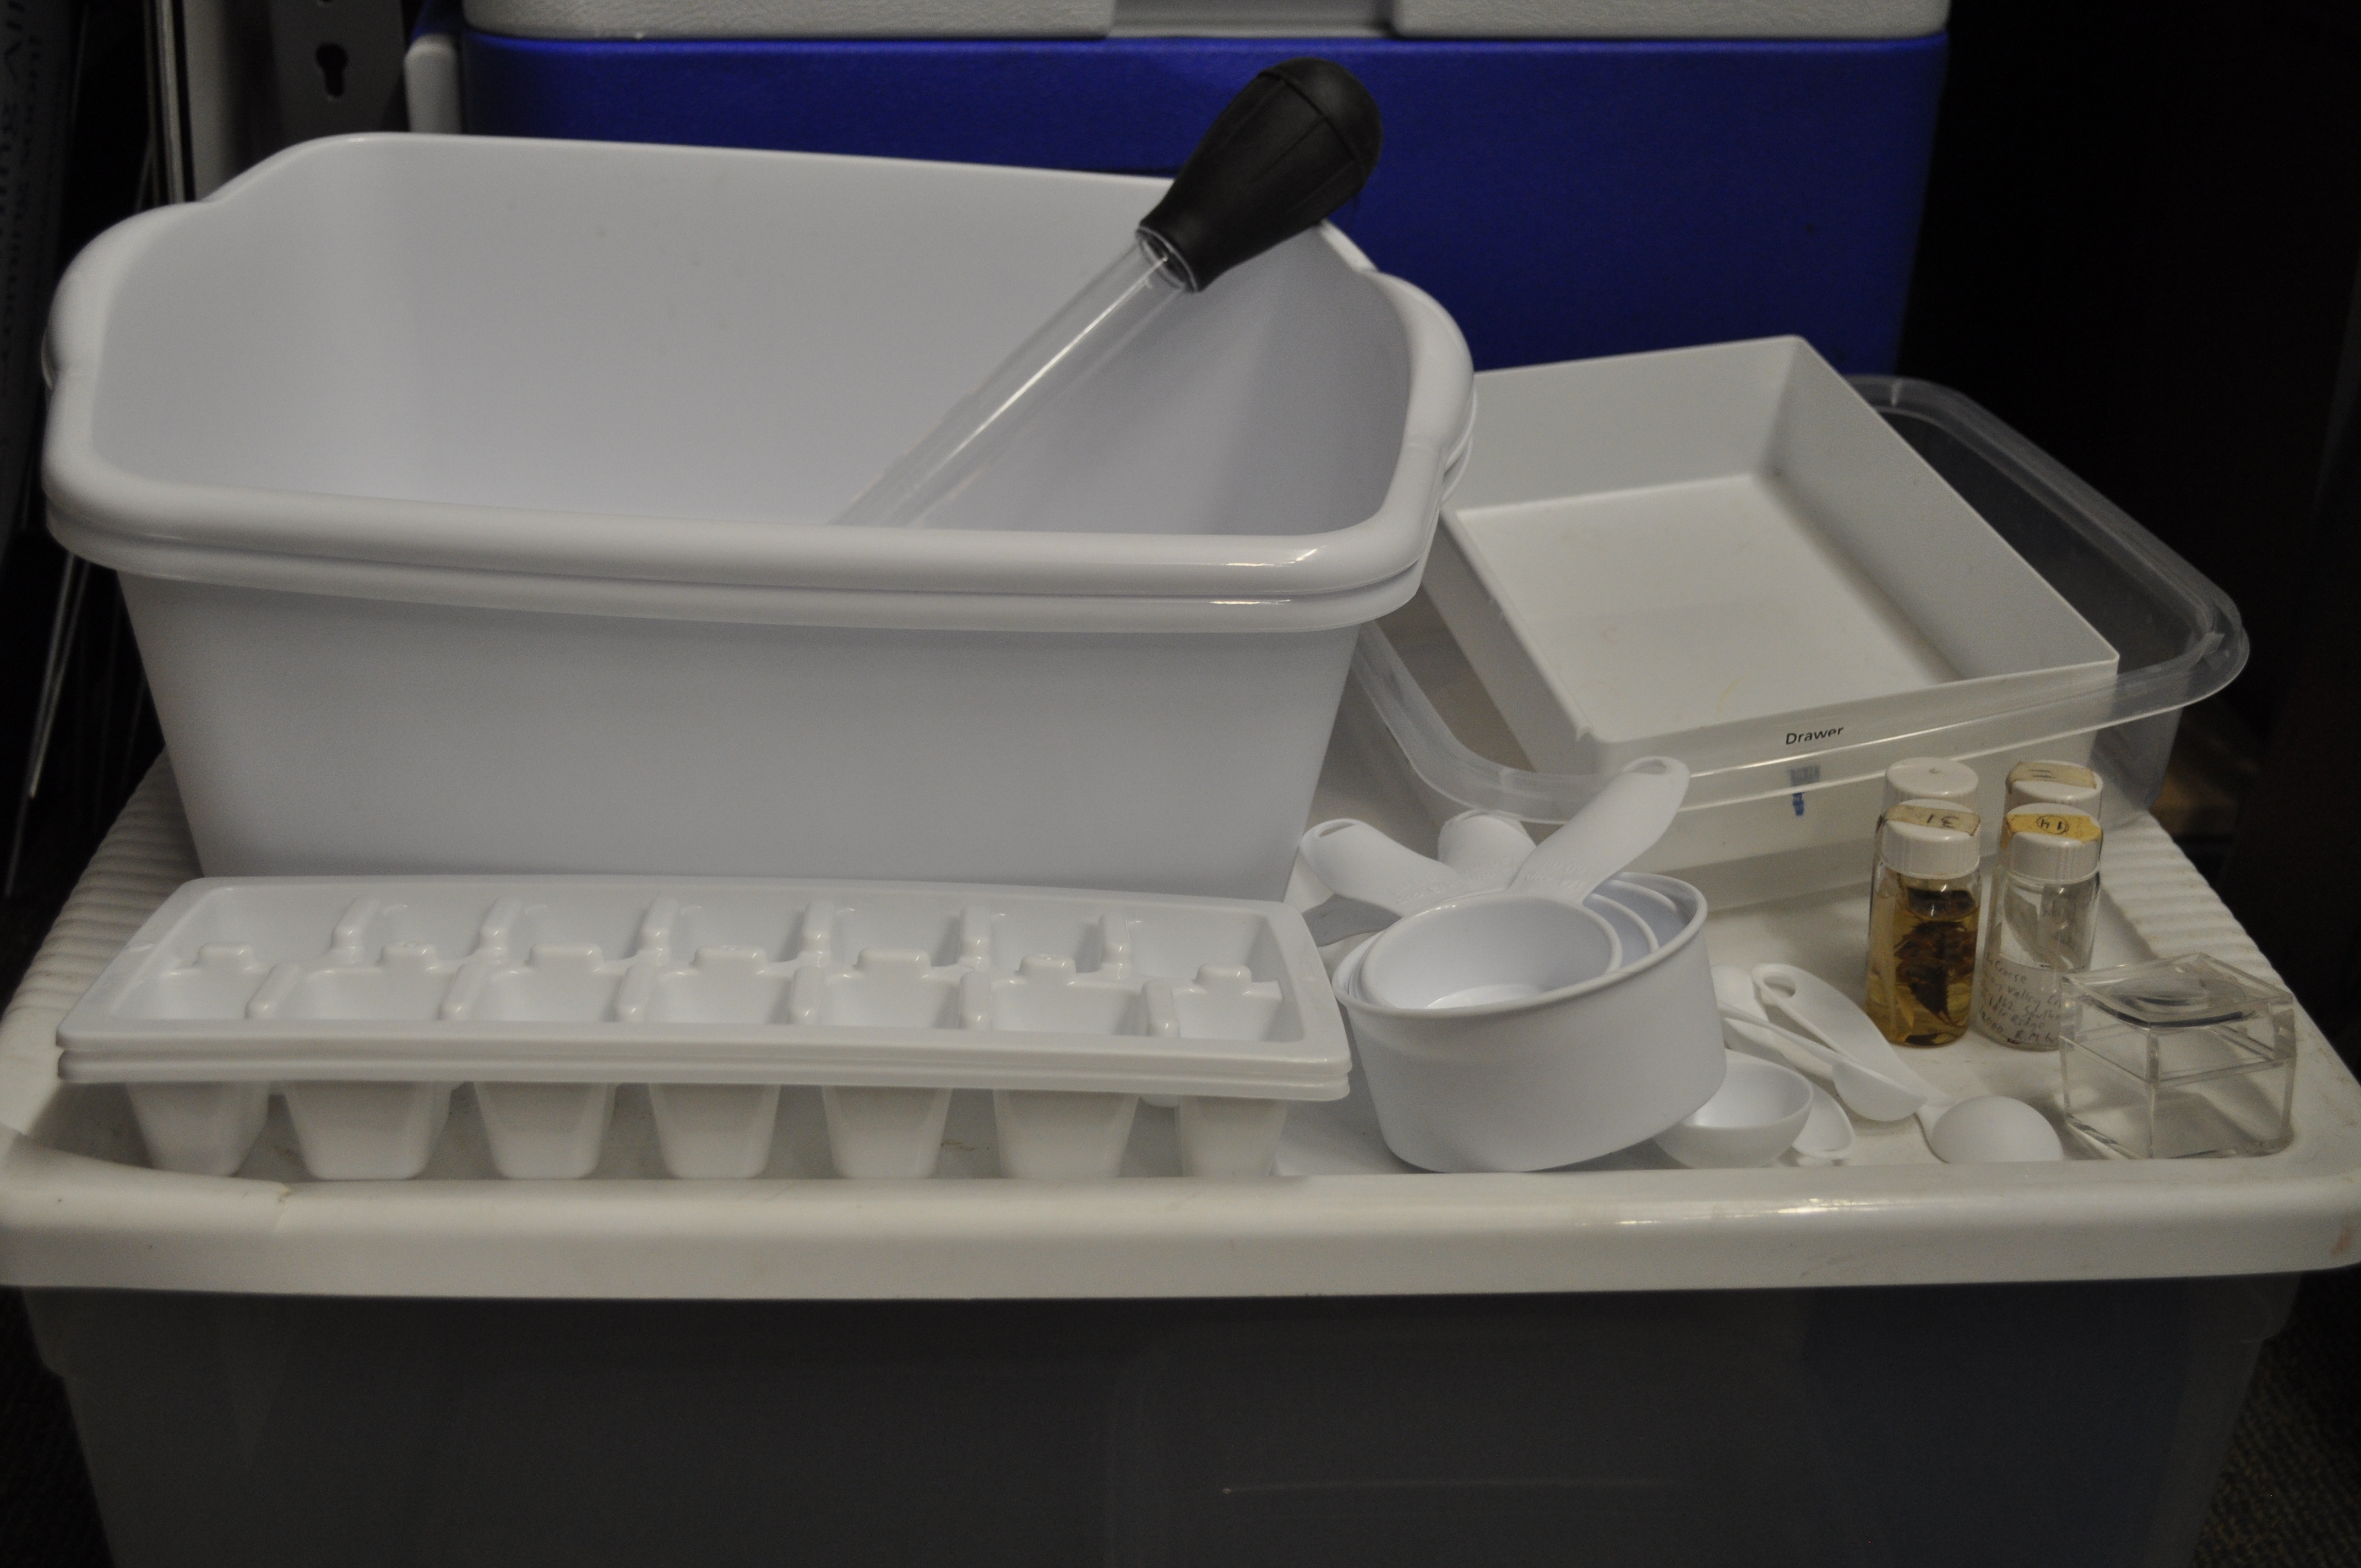 macroinvertebrate sampling kit